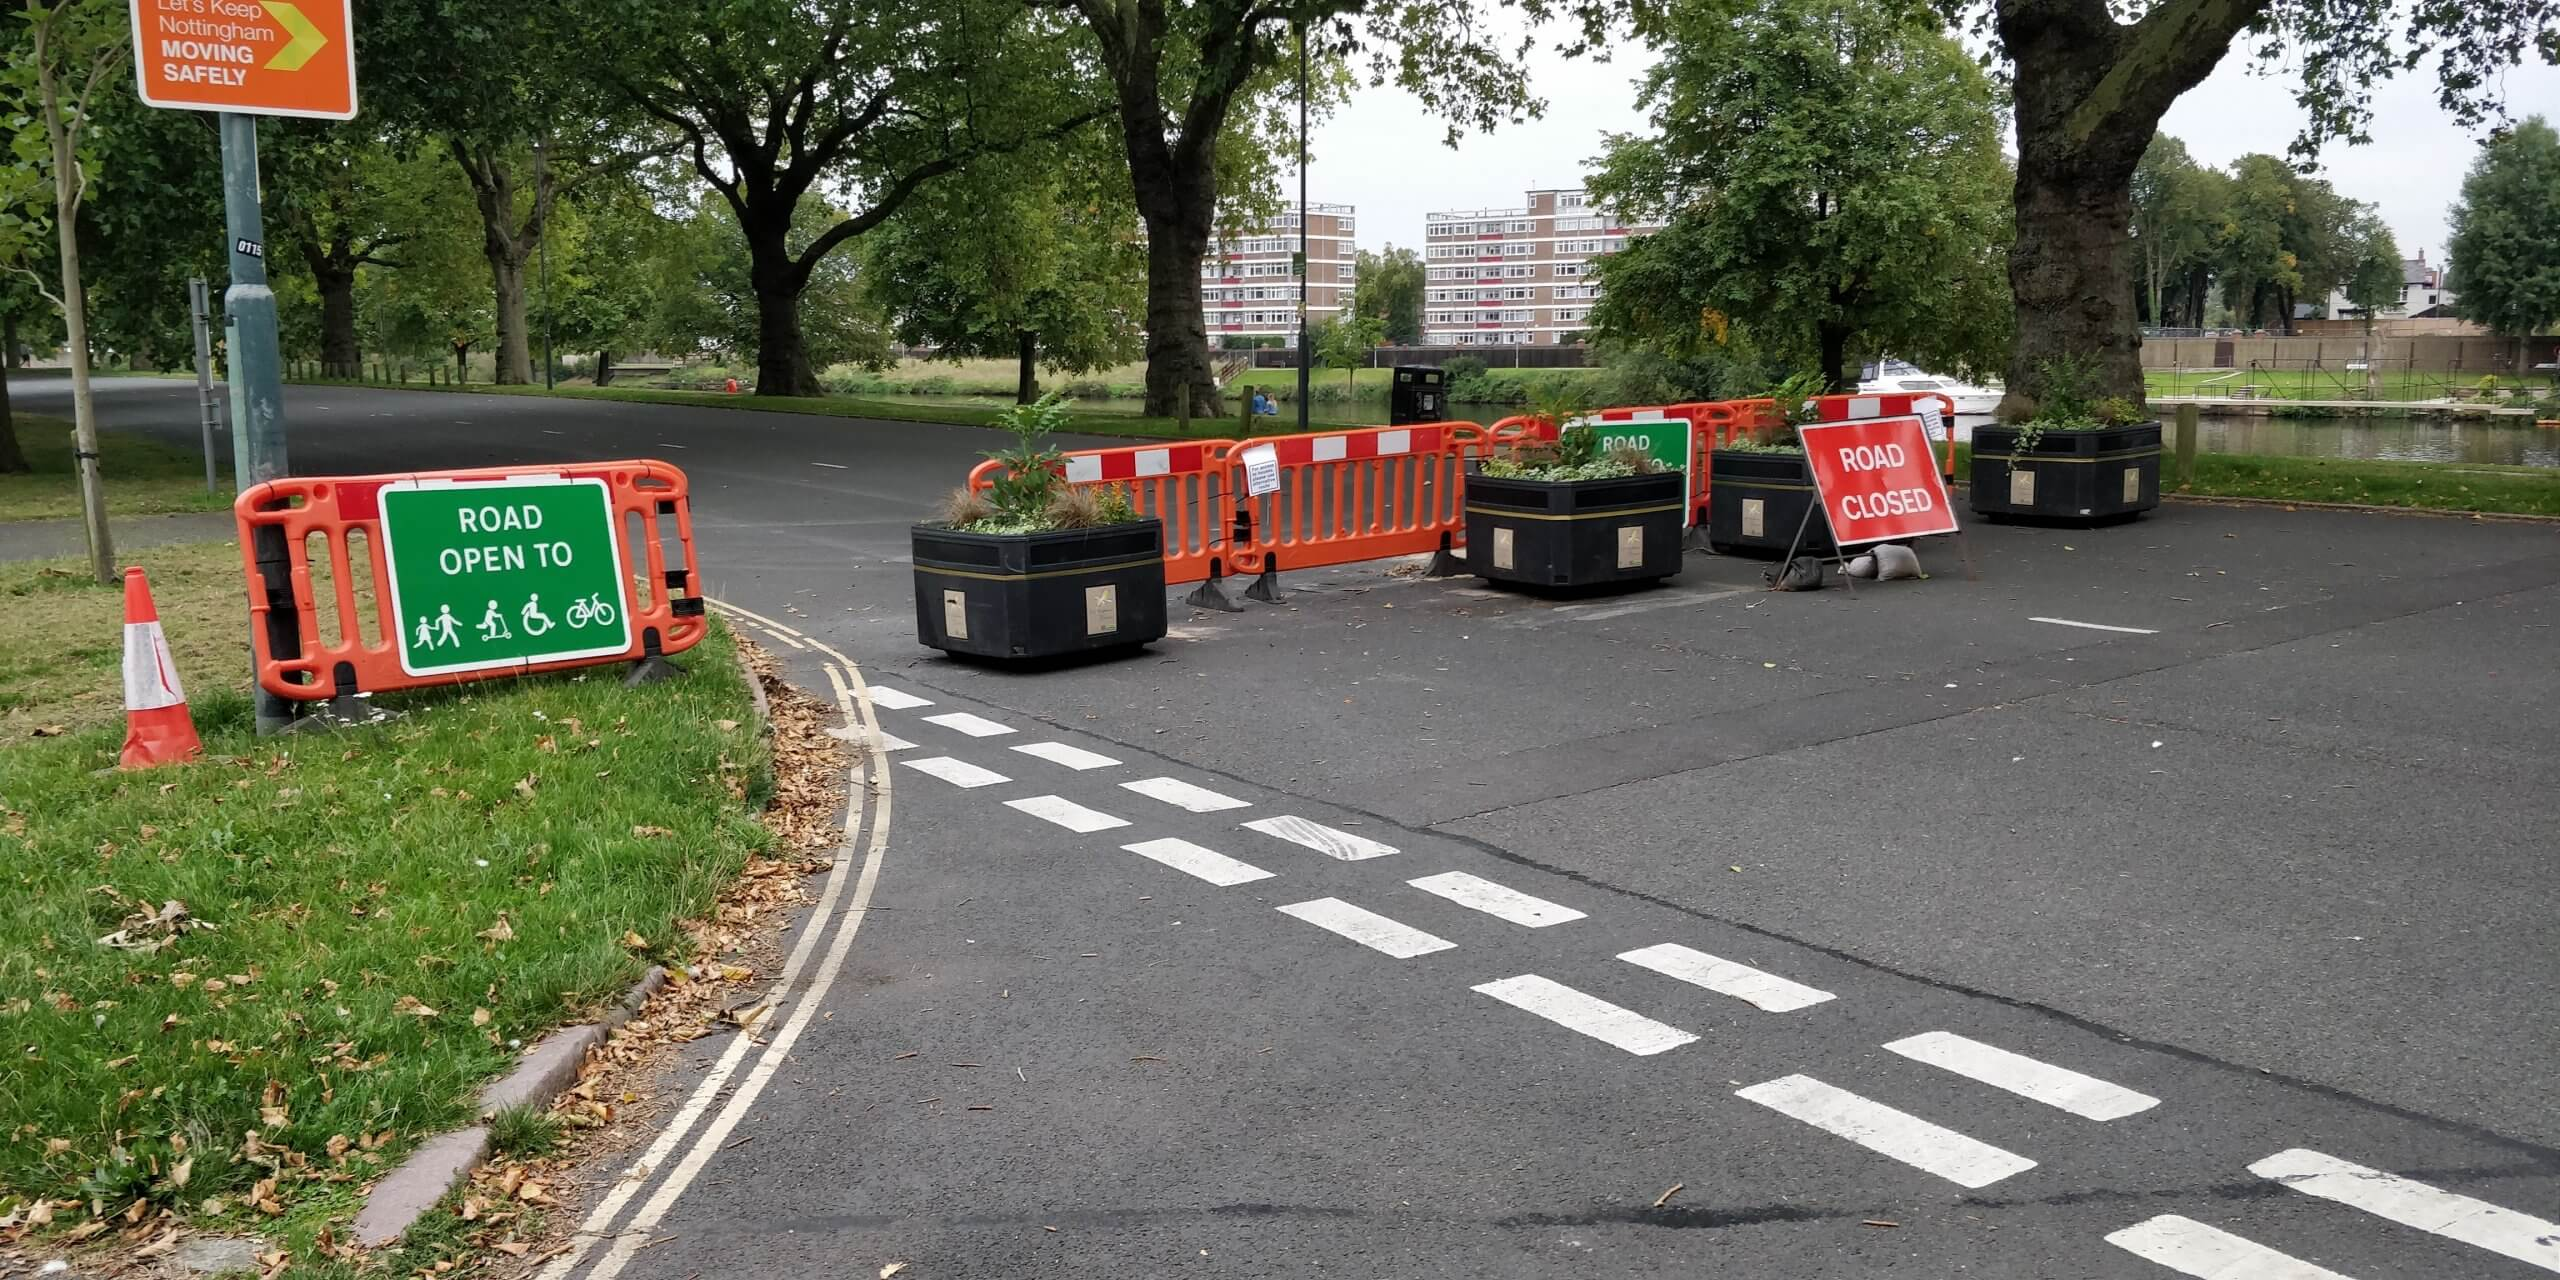 Temporary signs at Victoria Embankment